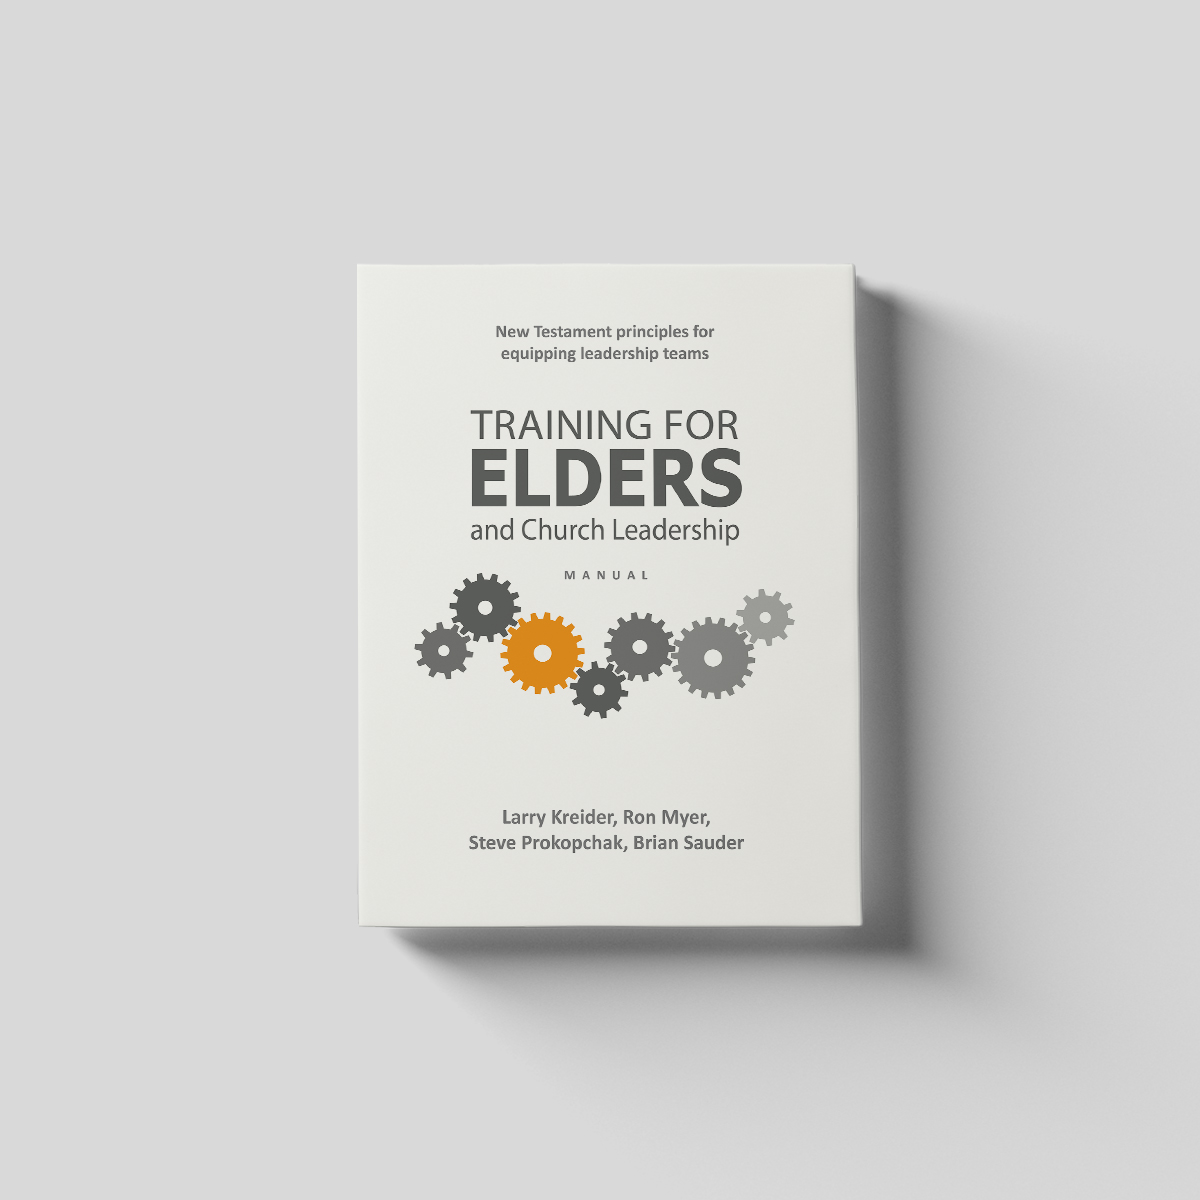 Elders Training and Church Leadership Manual